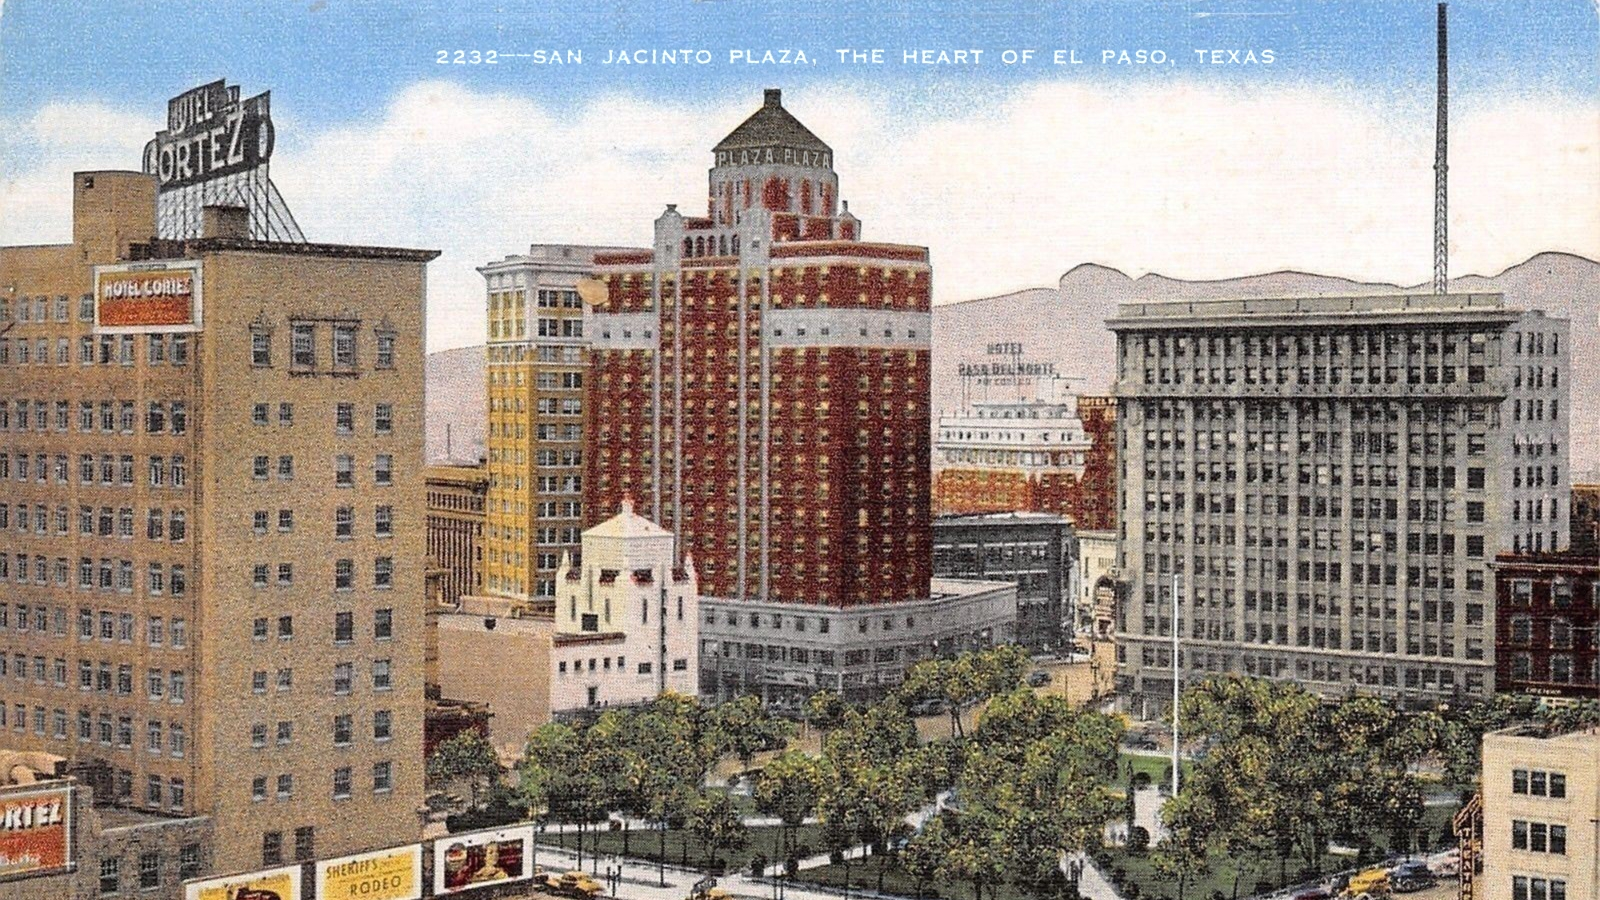 The Plaza Featured Image